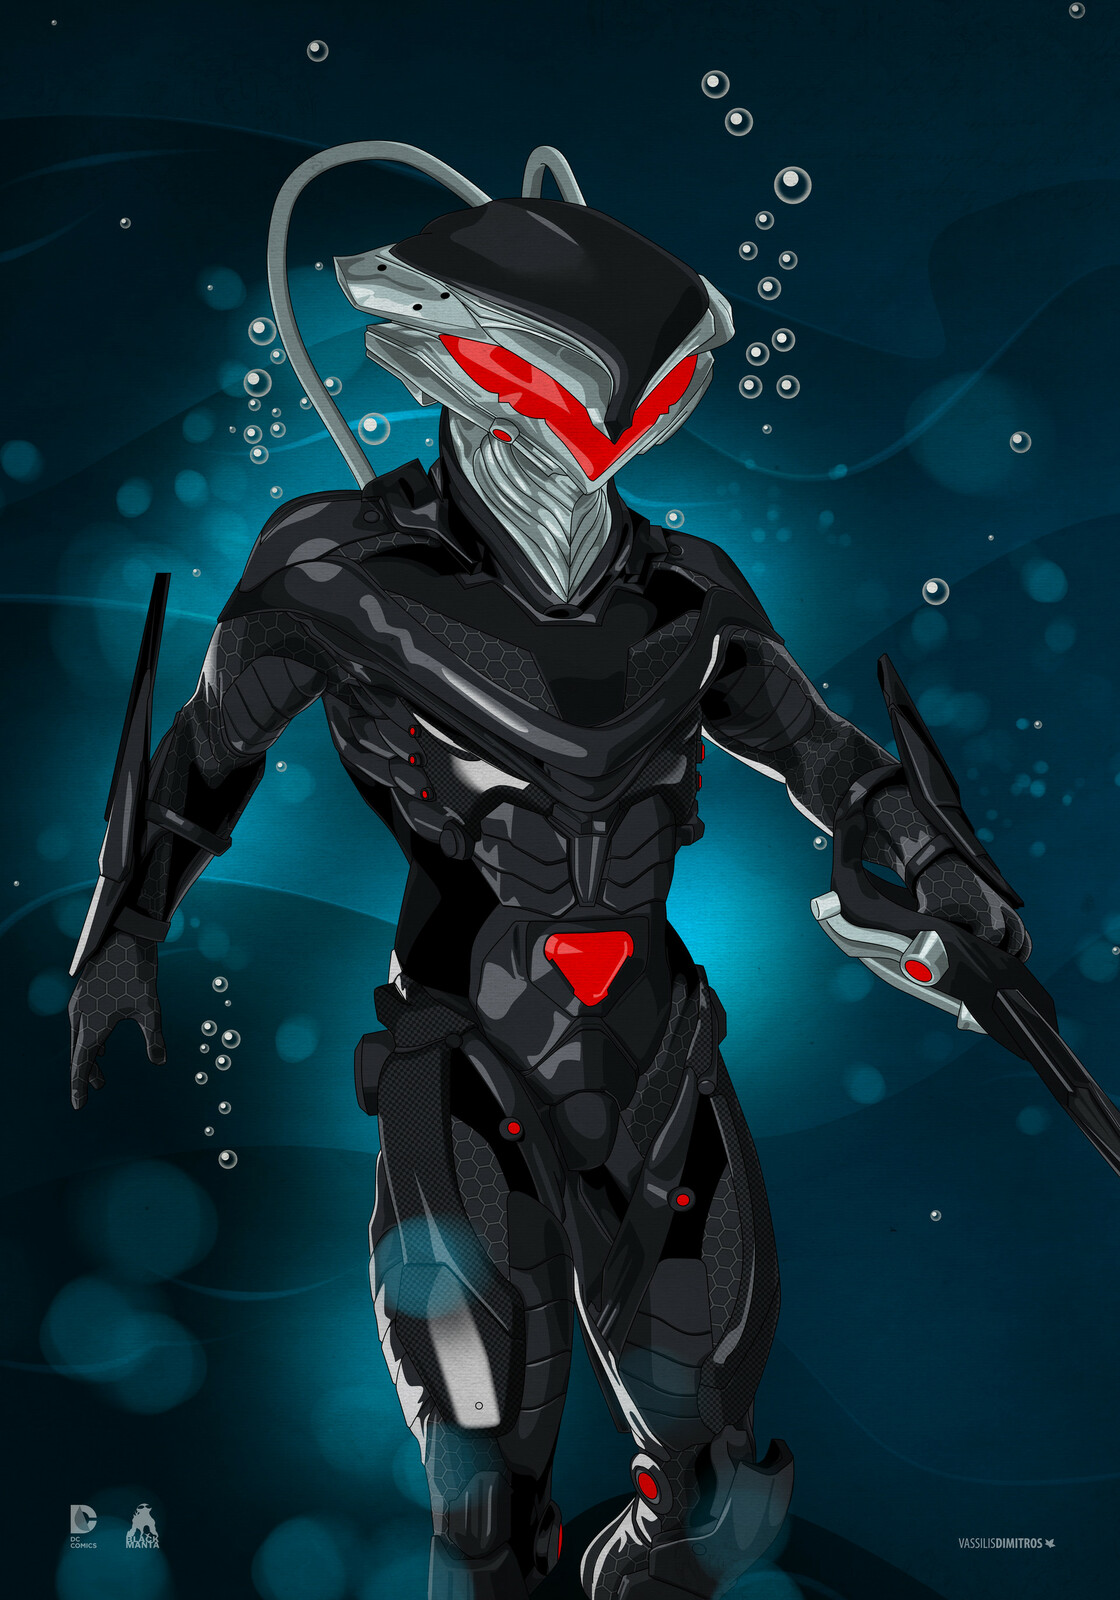 Black Manta Spacial thanks to Lukas Schneider for his valuable help providing a solid reference, for this one!